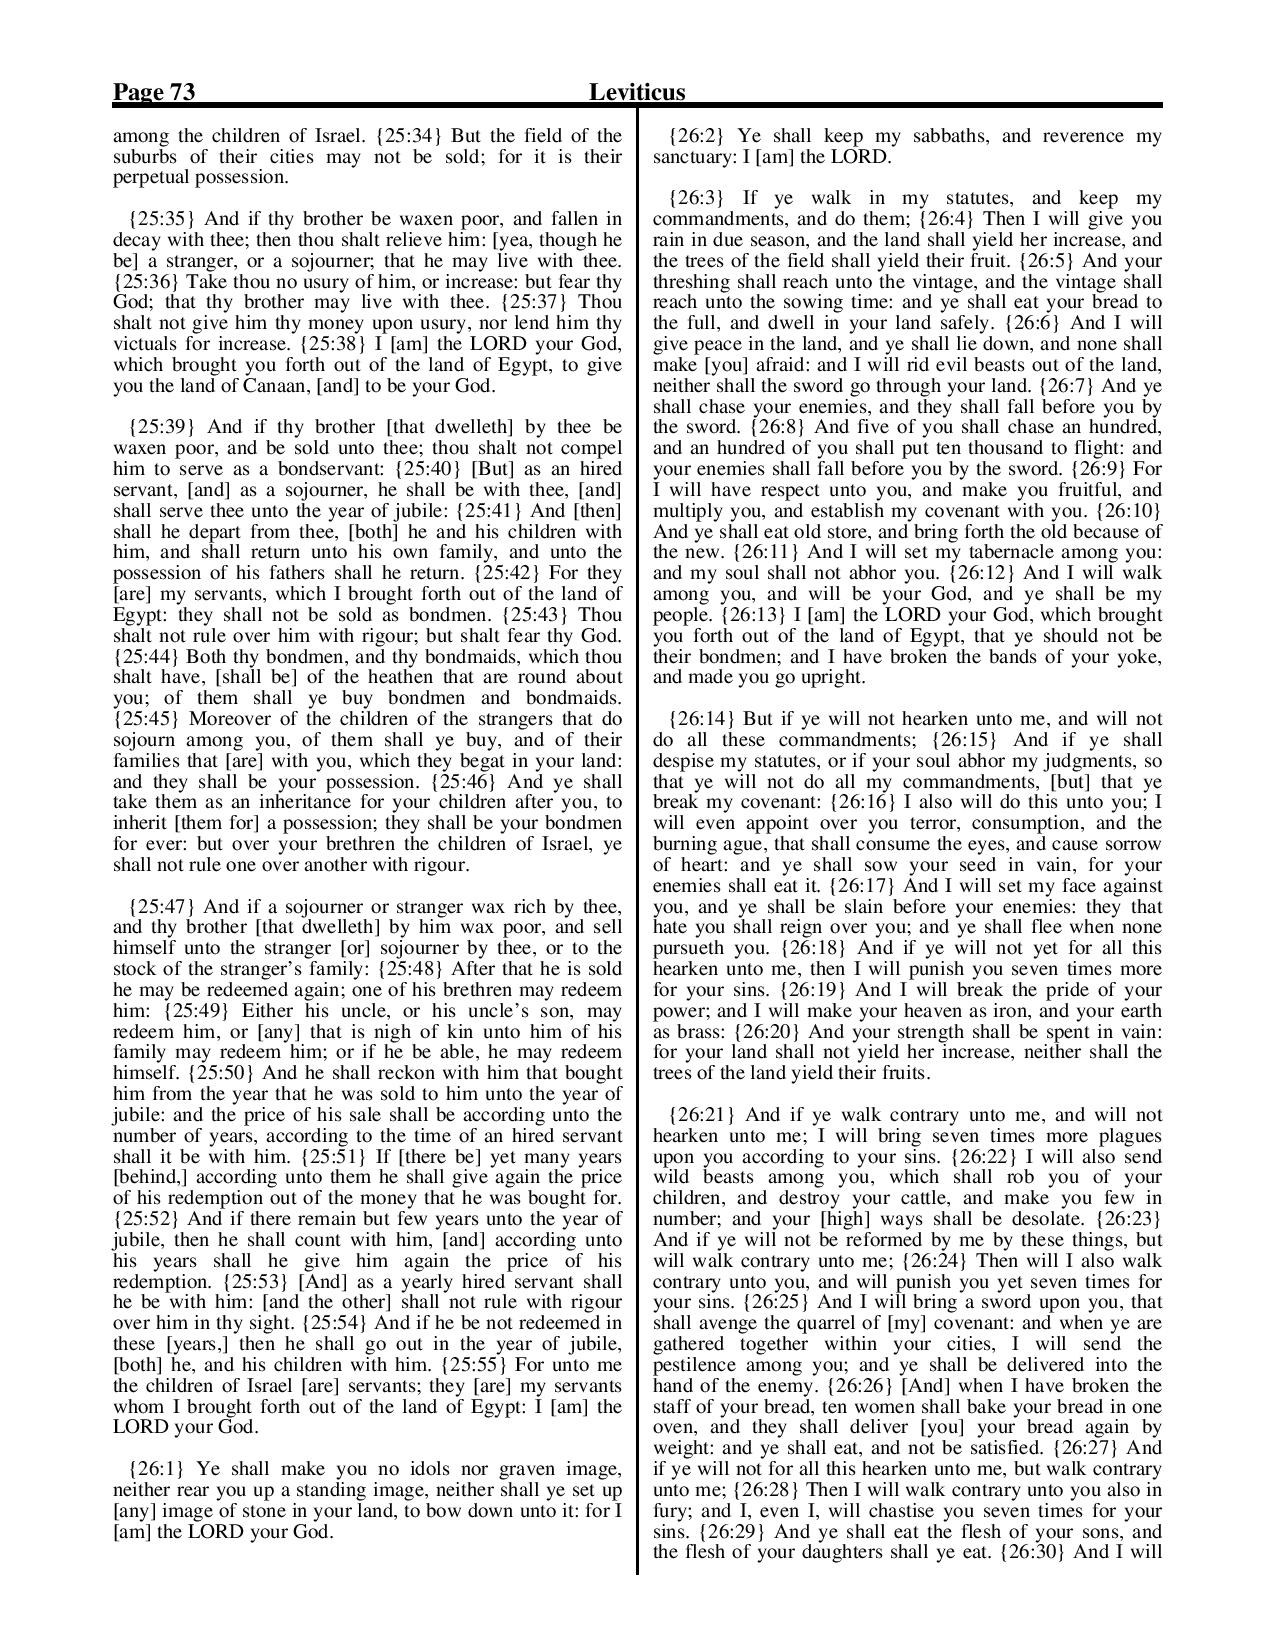 King-James-Bible-KJV-Bible-PDF-page-094